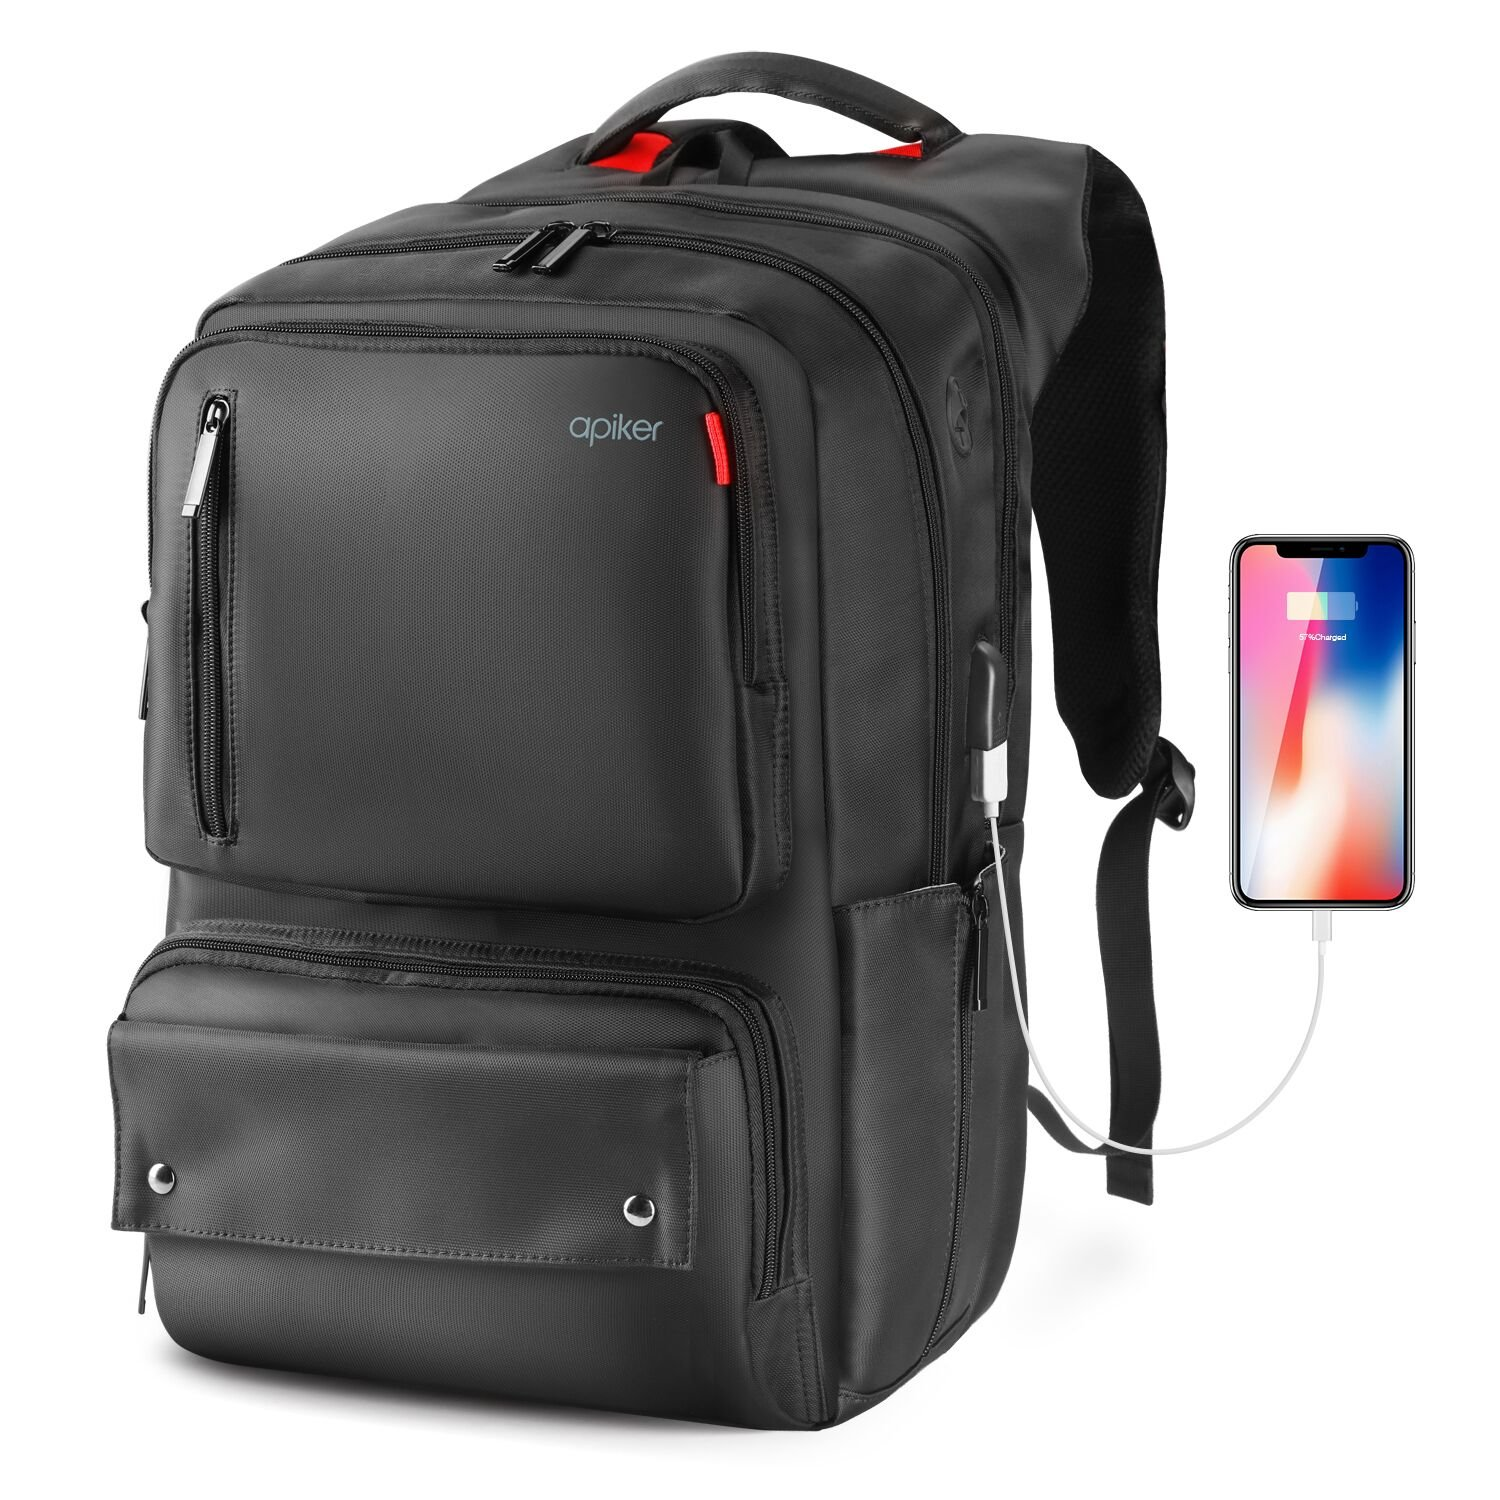 8a6a5b63ba Travel Laptop Backpack bag with USB Charging Port  Amazon.co.uk ...